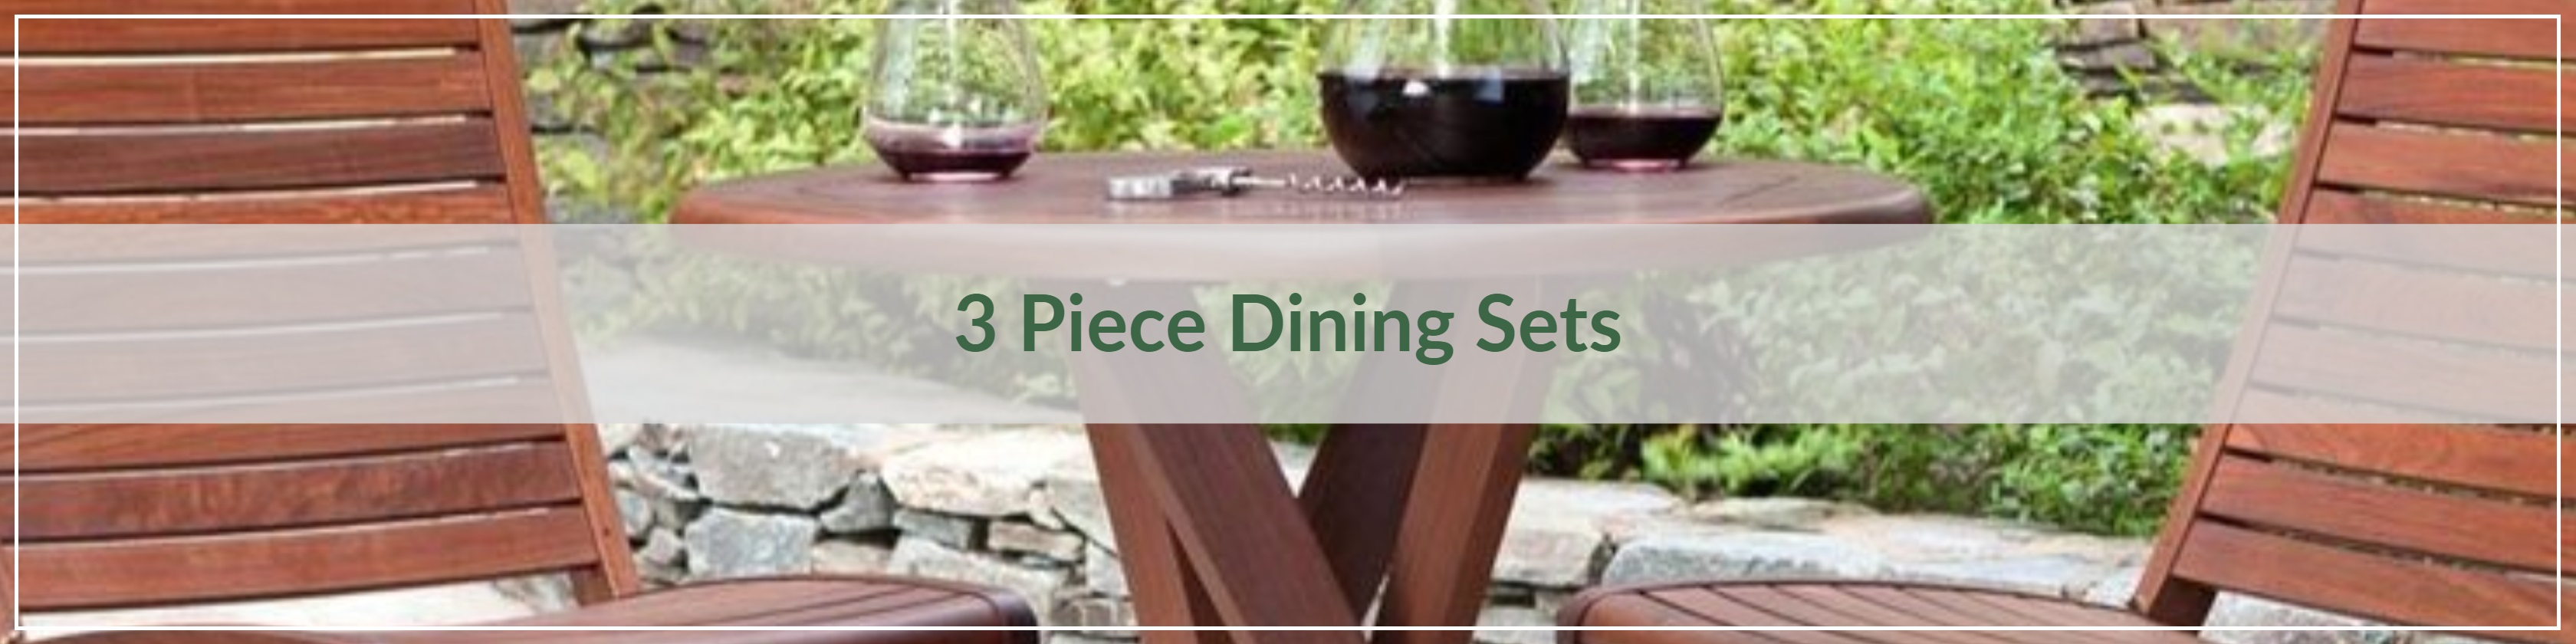 3 Piece Outdoor Dining Sets